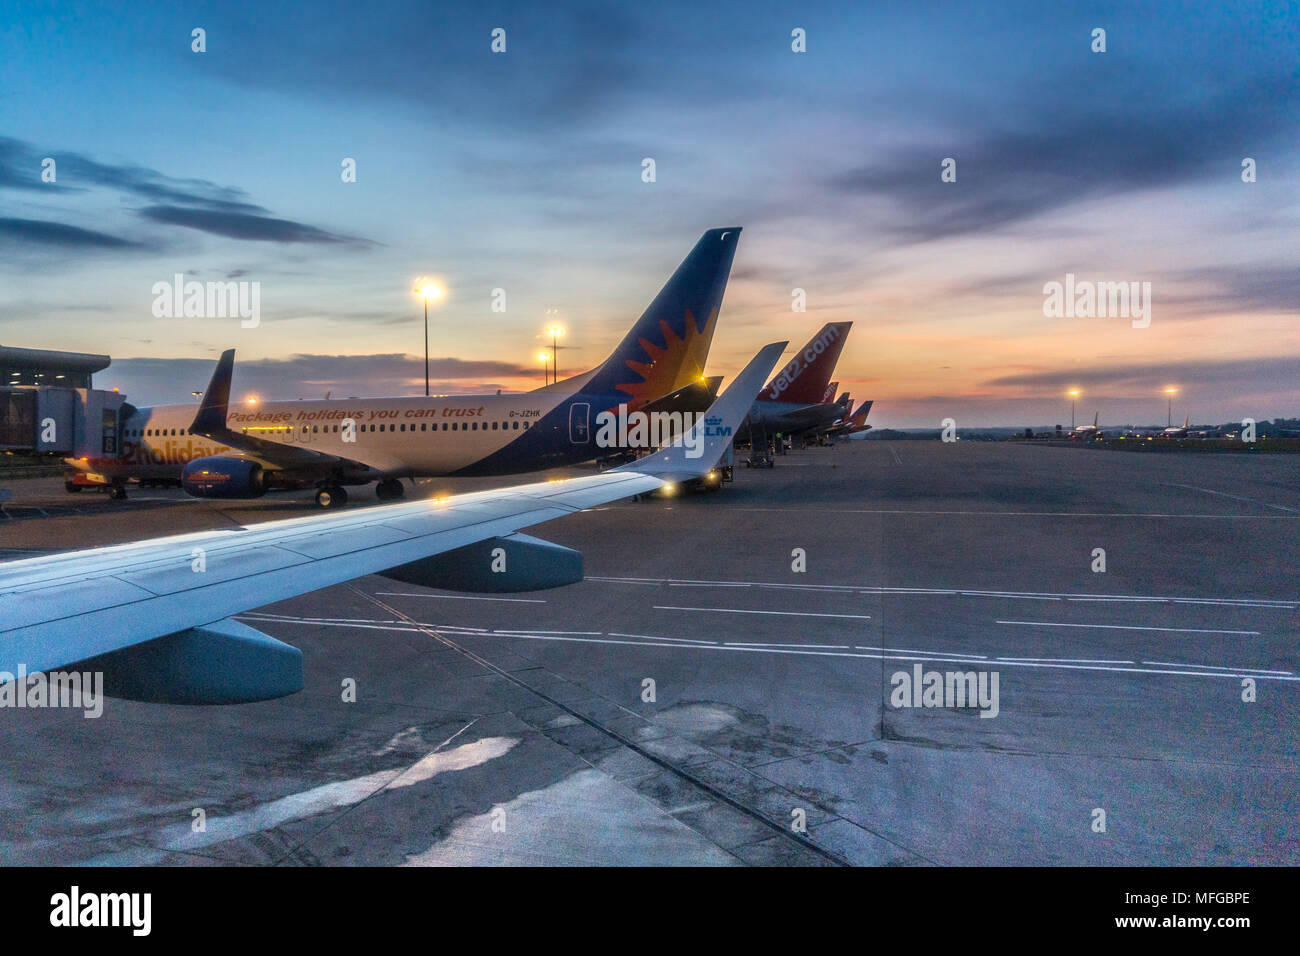 Window view from an aeroplane window looking across manchester airport runway at sunrise. - Stock Image